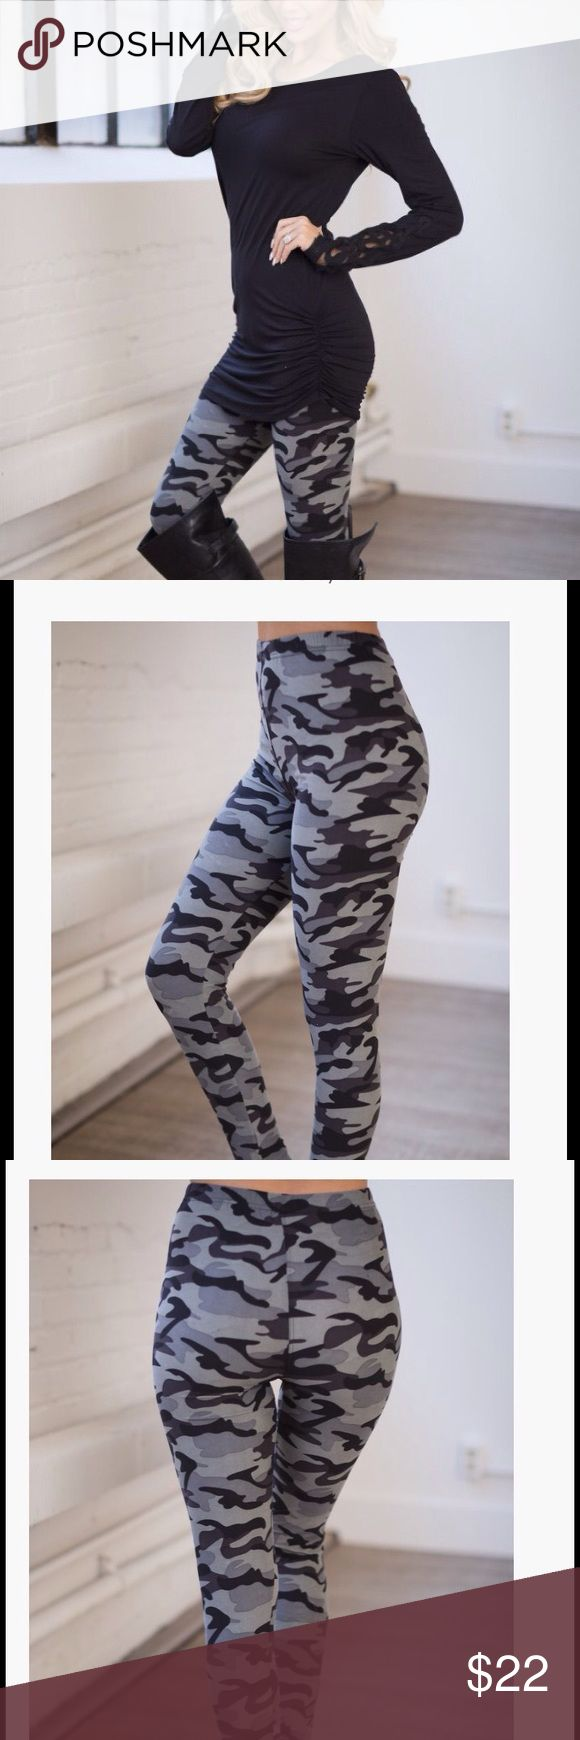 Best Camouflage Leggings You will not want yo take these fabulous leggings off. Microfiber brushed poly spandex blend super soft stretchy leggings . Great with tunics . Year round material perfect for travel. One size fits most sizes small through XL. . Please use buy now option or add to bundle to purchase . Nwot Vivacouture Pants Leggings